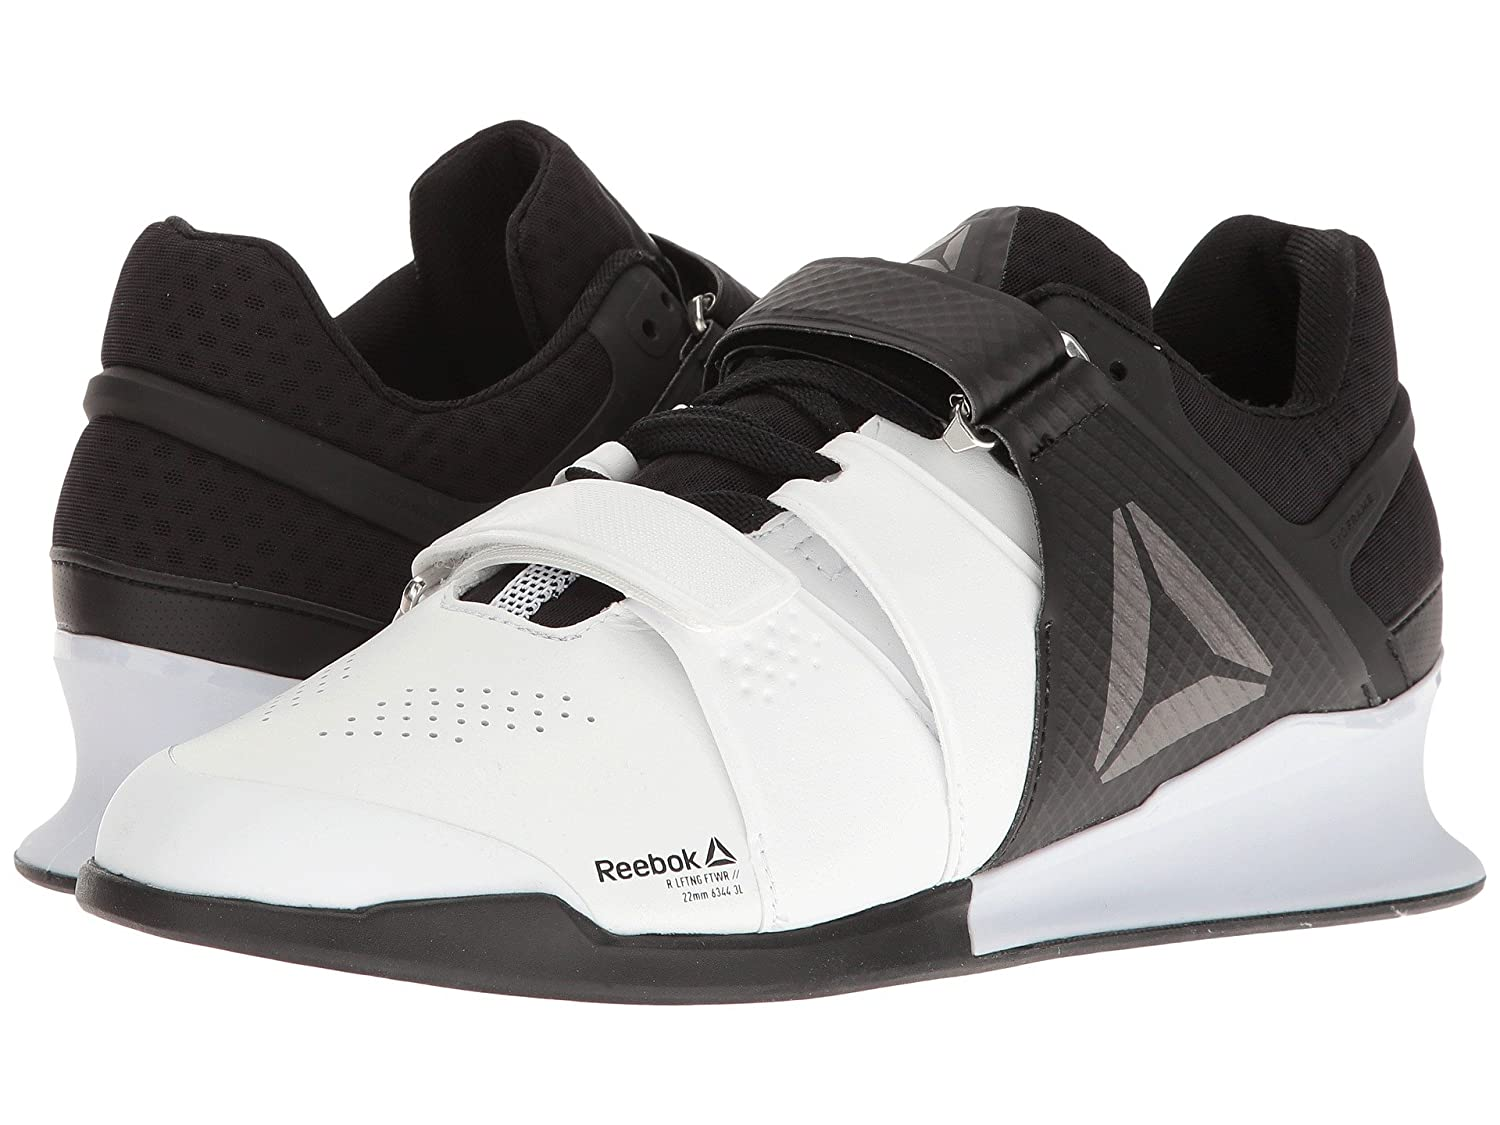 [リーボック] Reebok メンズ Legacy Lifter スニーカー [並行輸入品] B06X3Y2XXK US9(27cm) - D - Medium|White/Black/Pewter